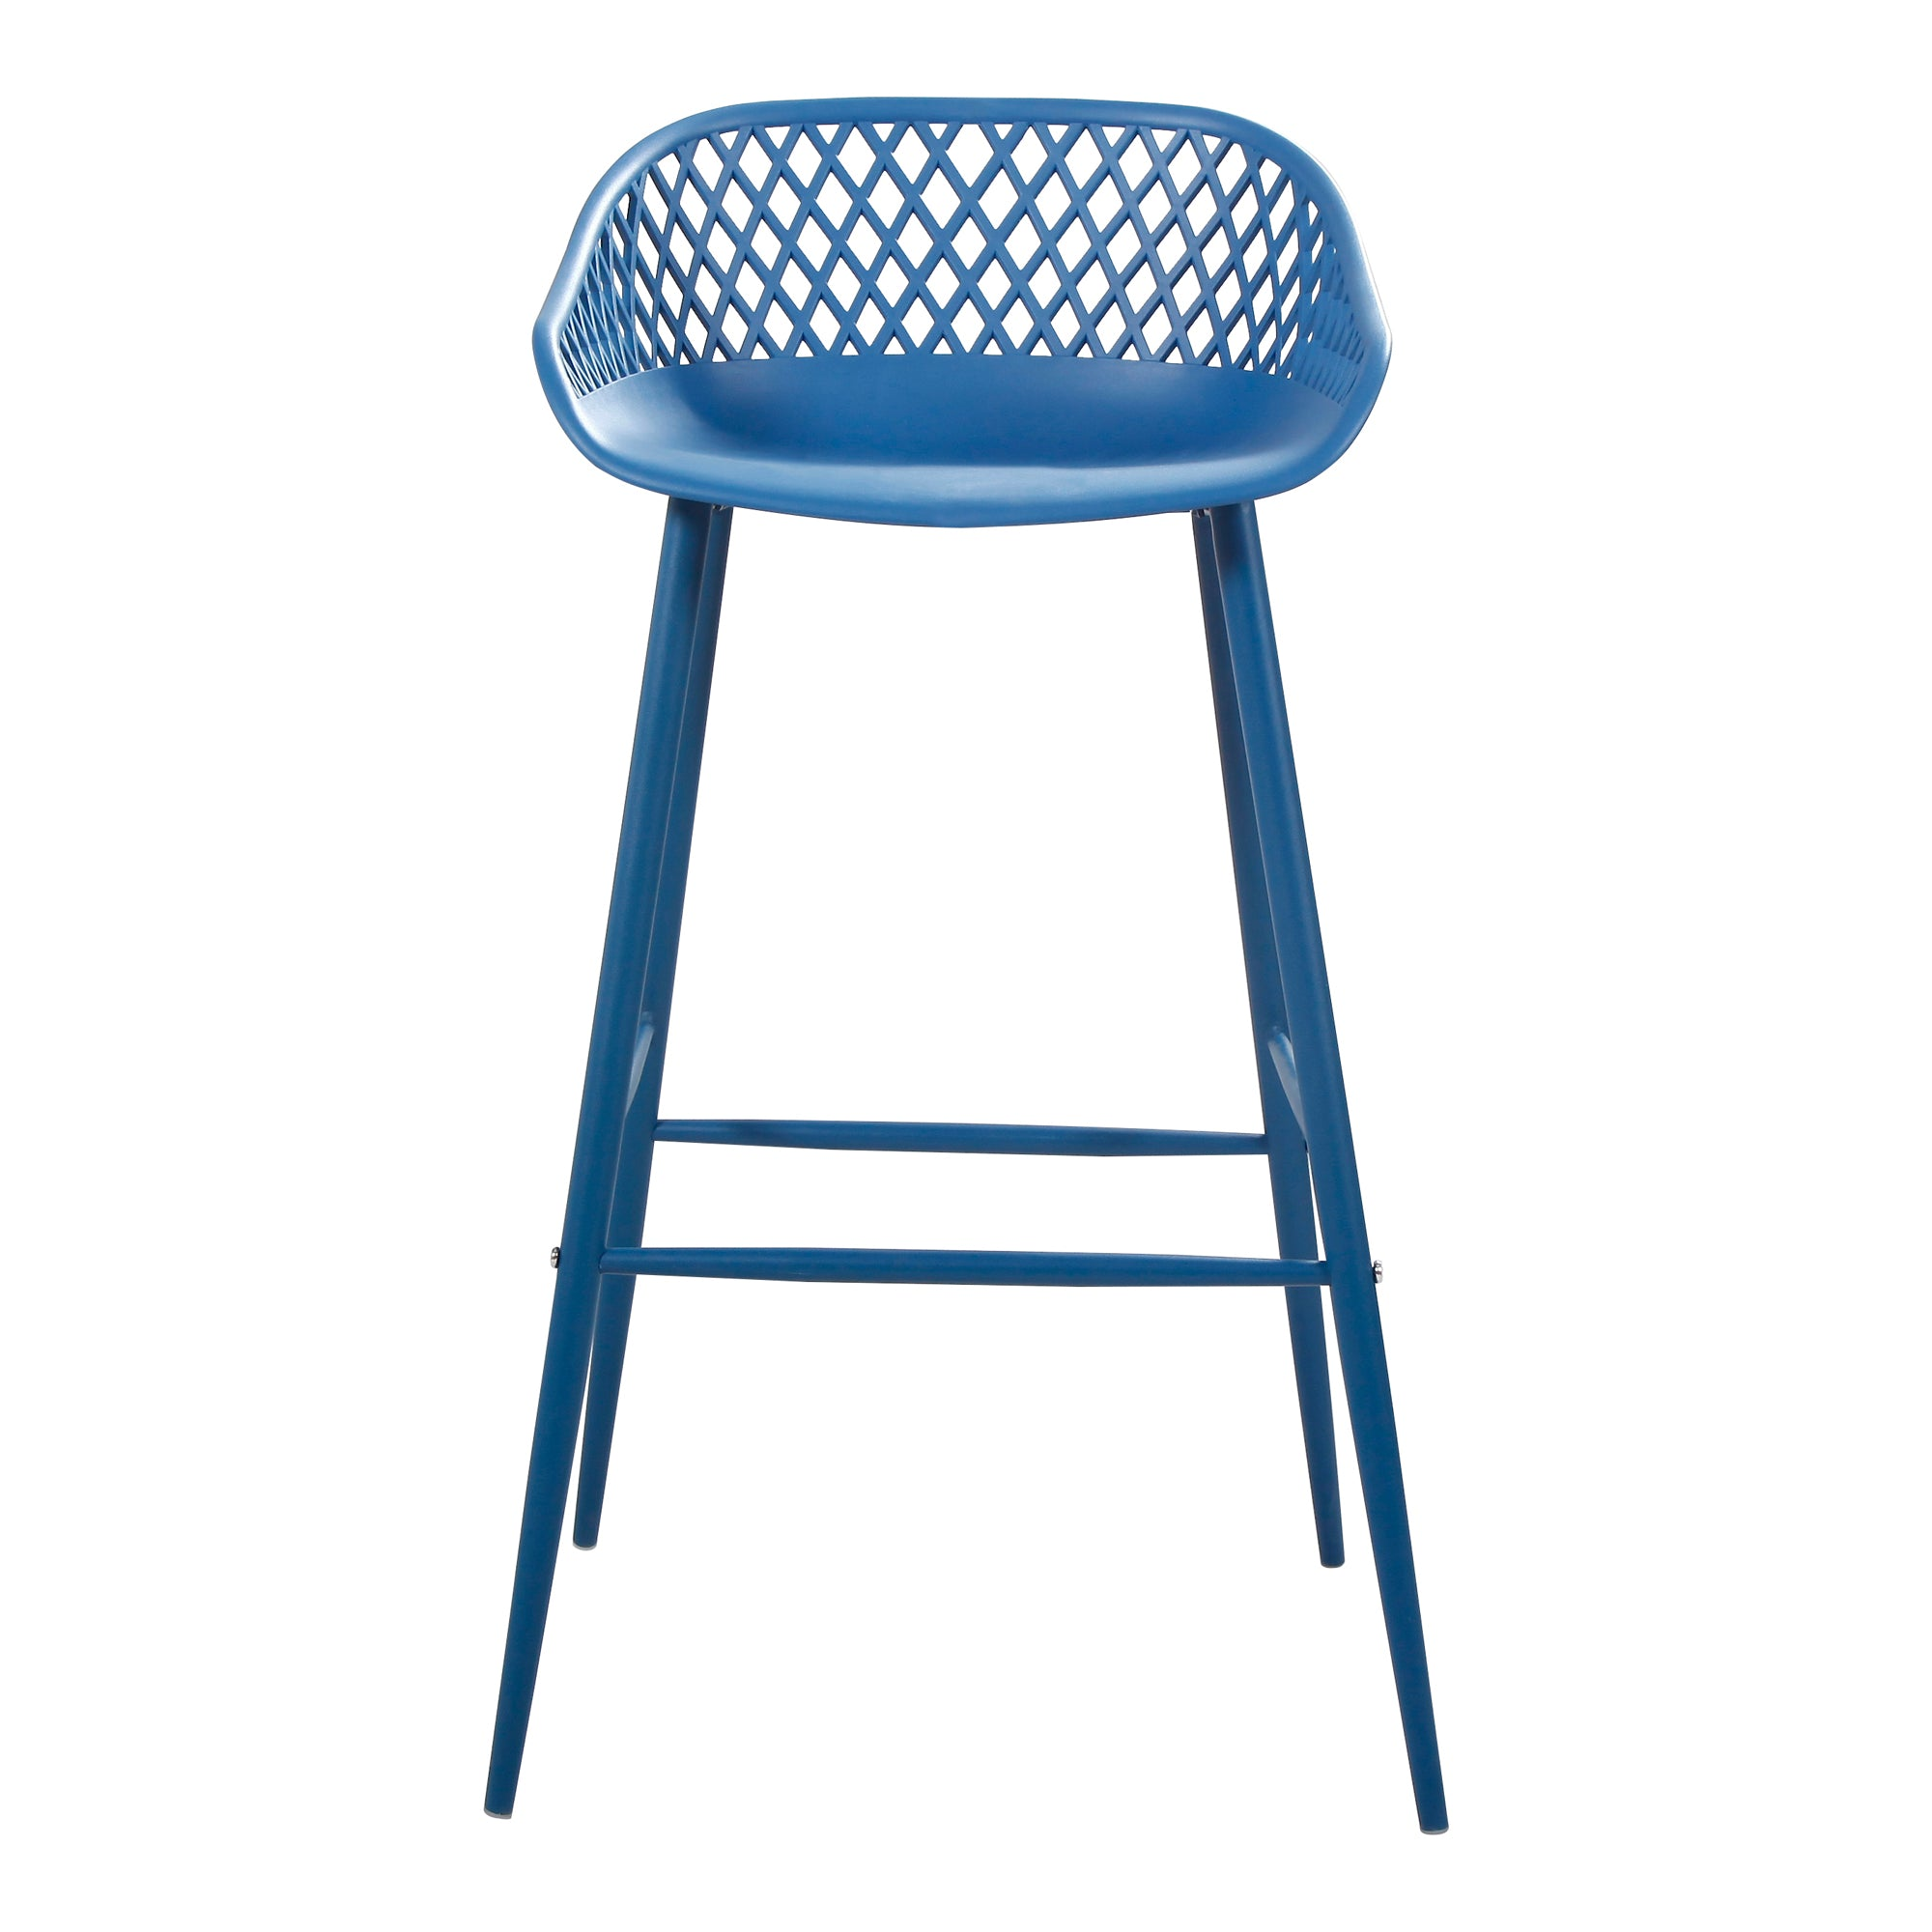 Piazza Outdoor Barstool - Set of 2